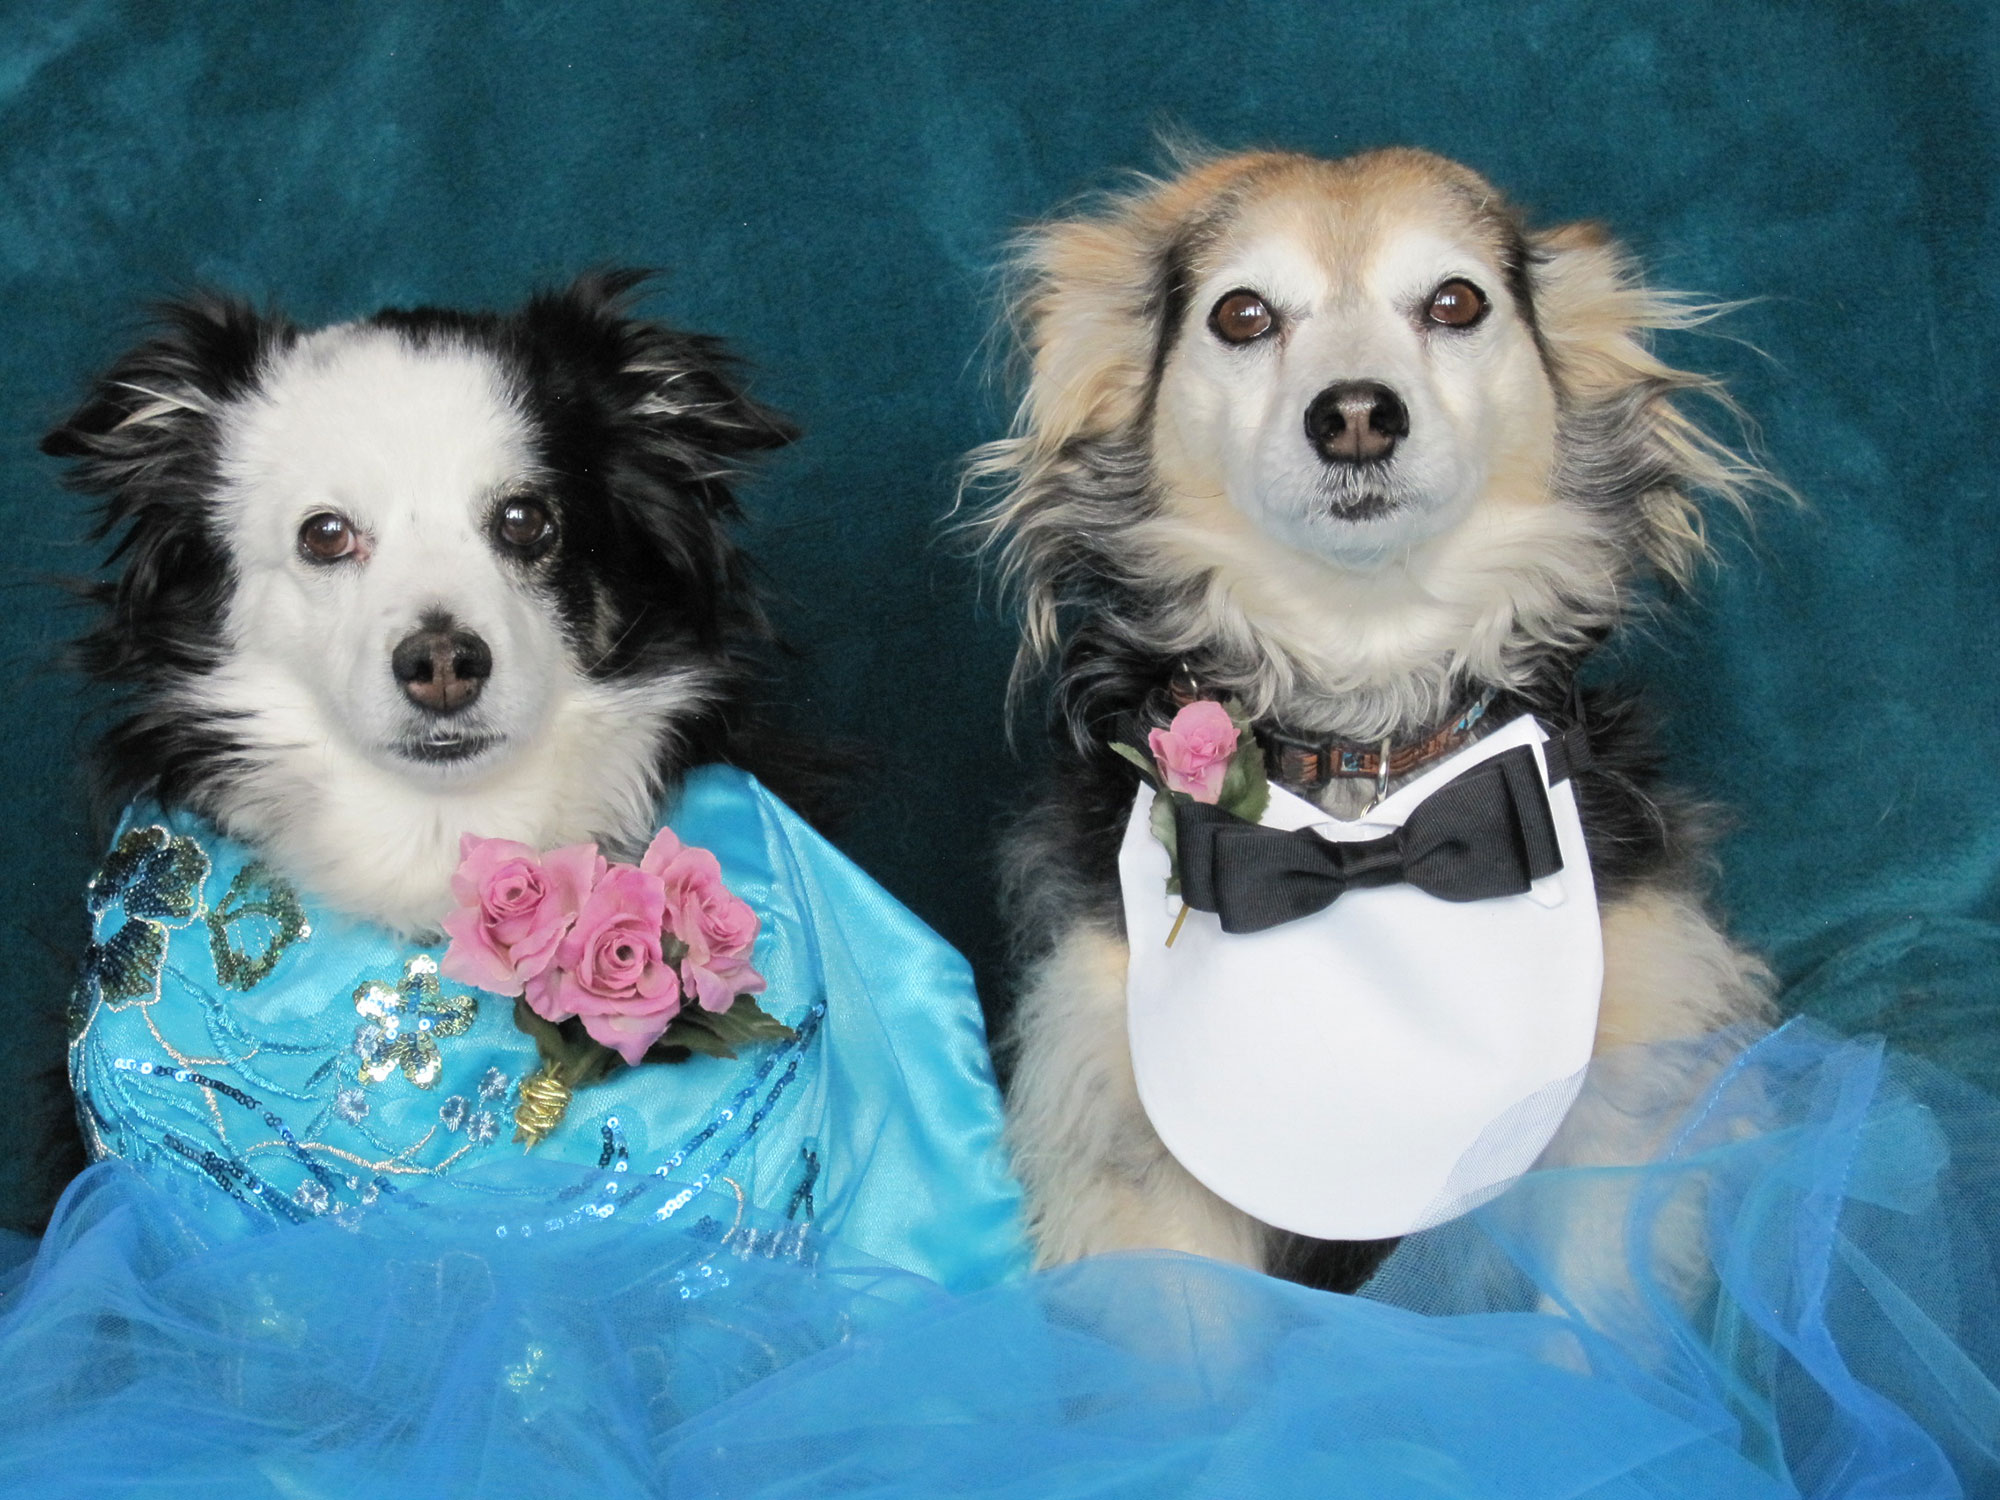 Senior Dog Prom Is a Real Thing and Your Pooch Can Participate!